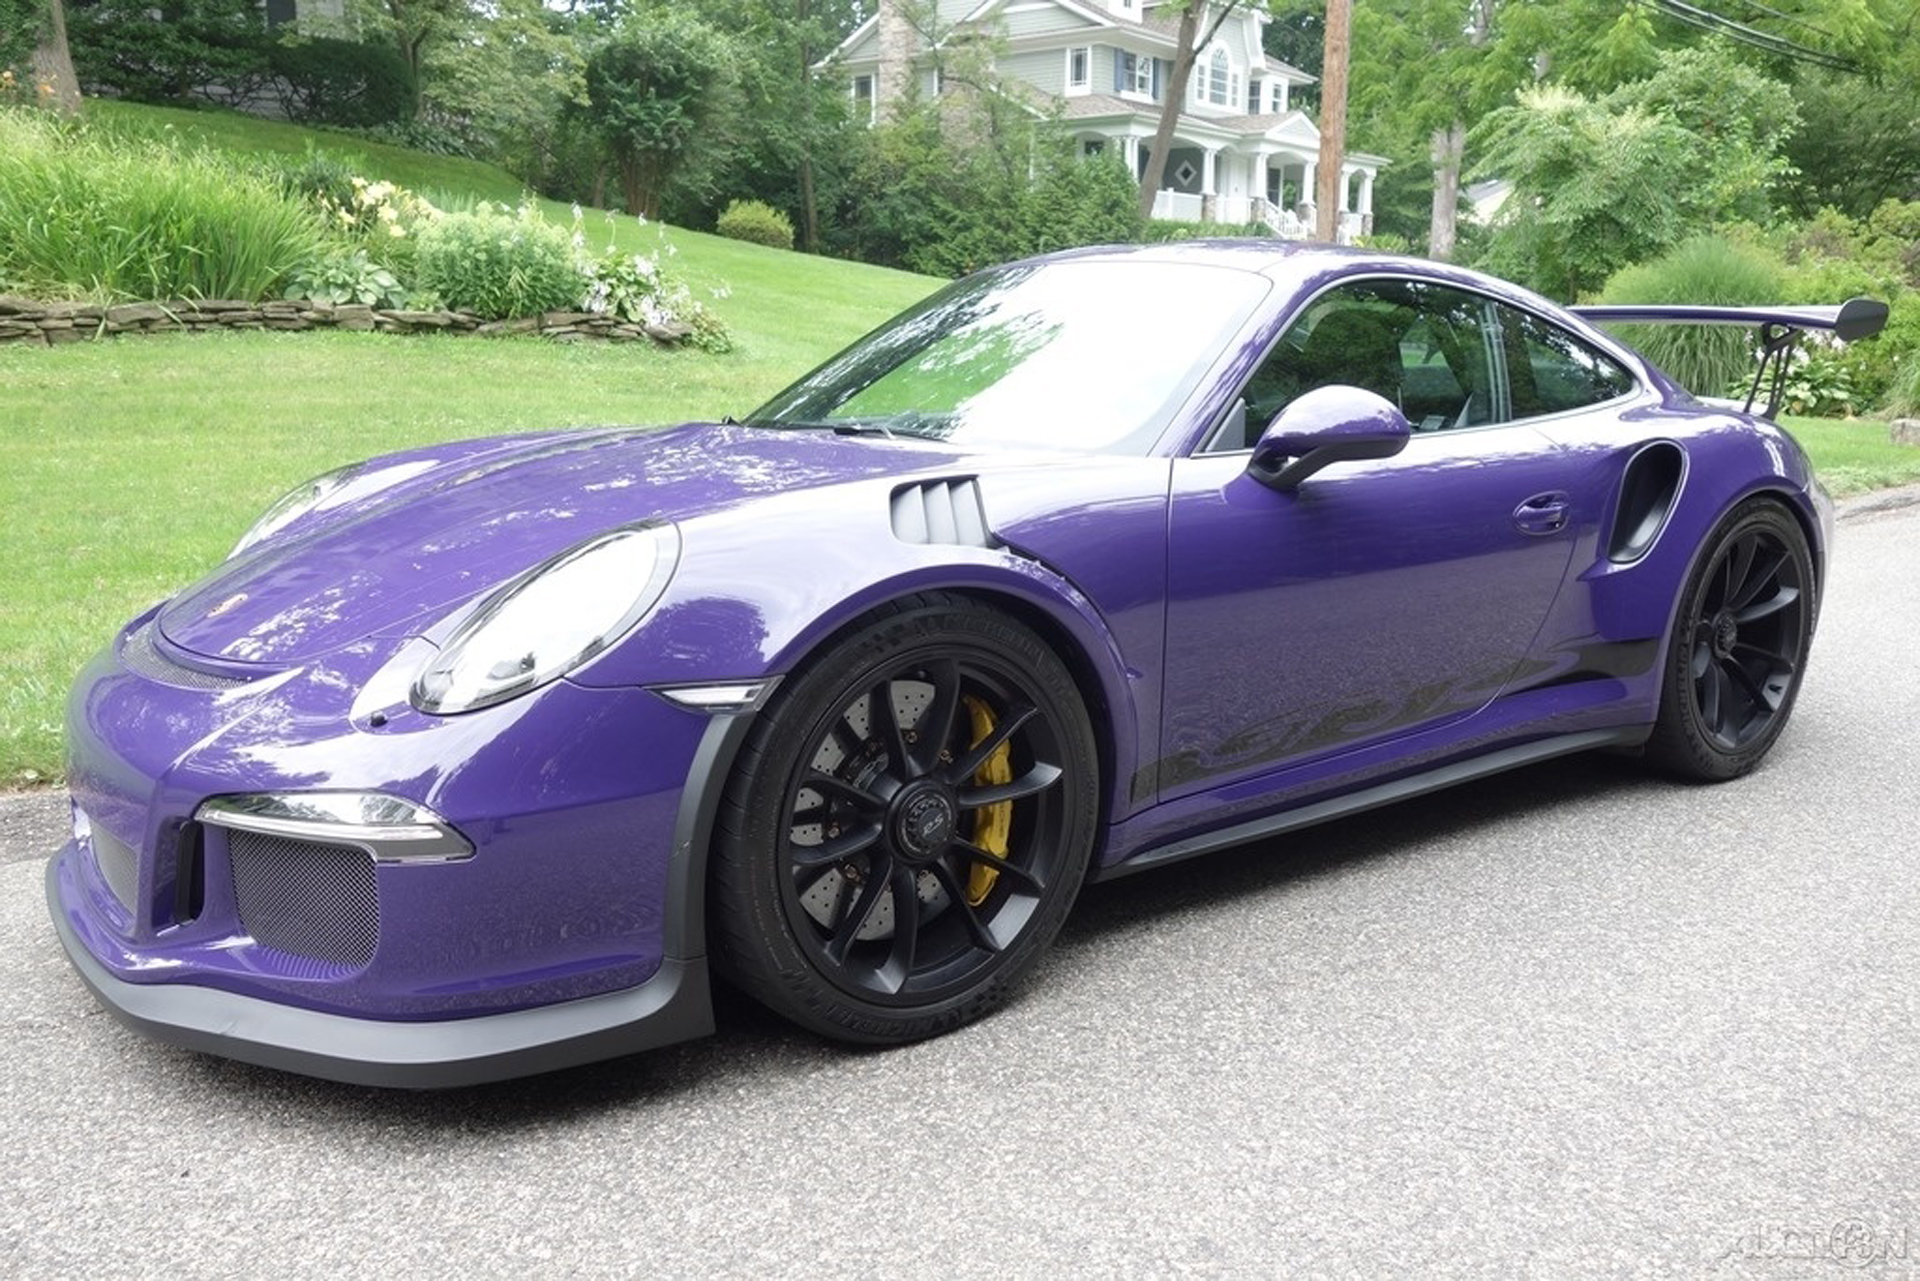 Long island Used Cars for Sale Best Of 2016 Porsche 911 Gt3 Rs Ultraviolet Long island Ny for Sale $244 900